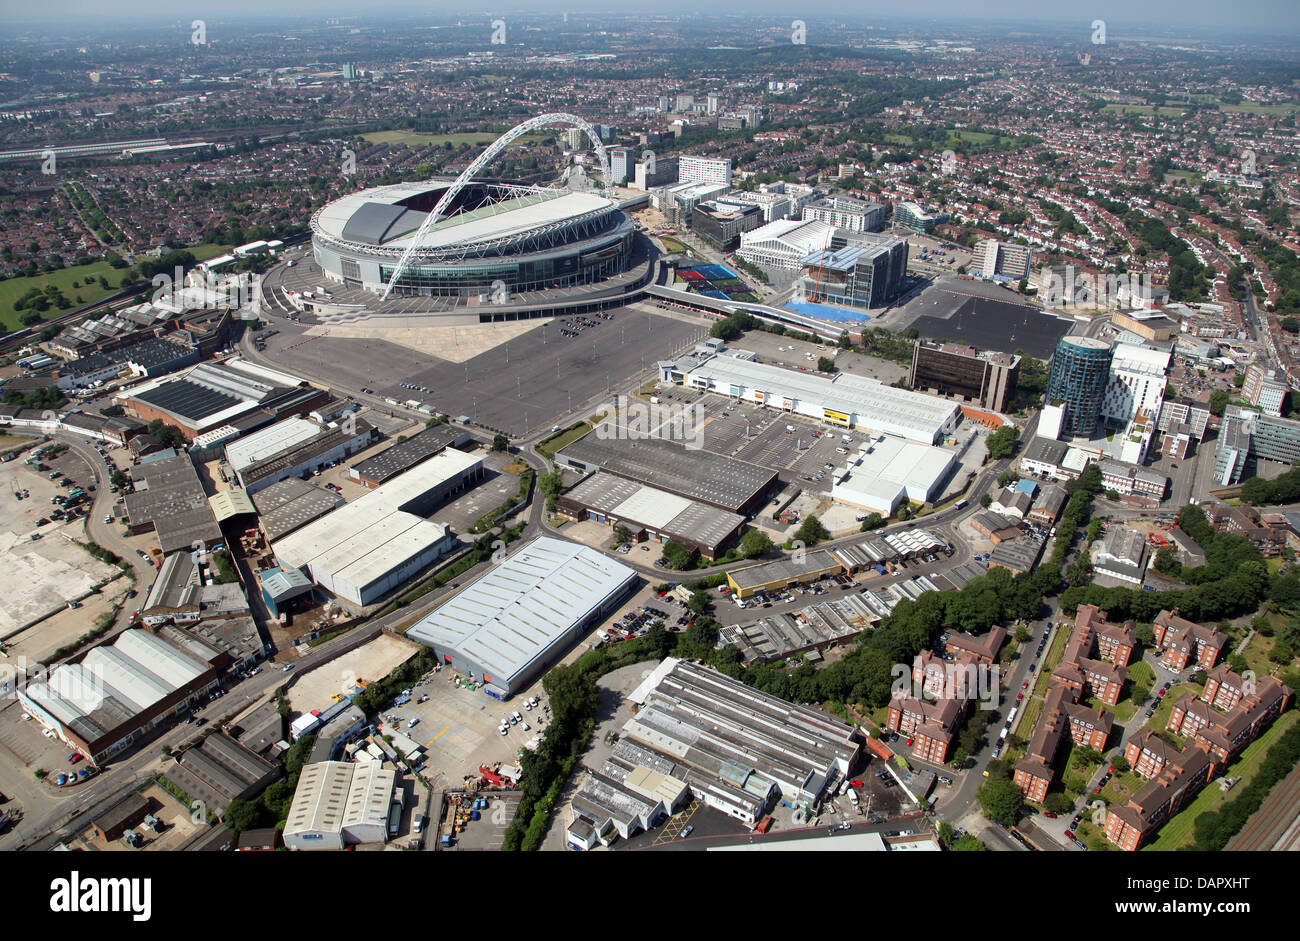 aerial view of Wembley Park, Wembley, London - Stock Image